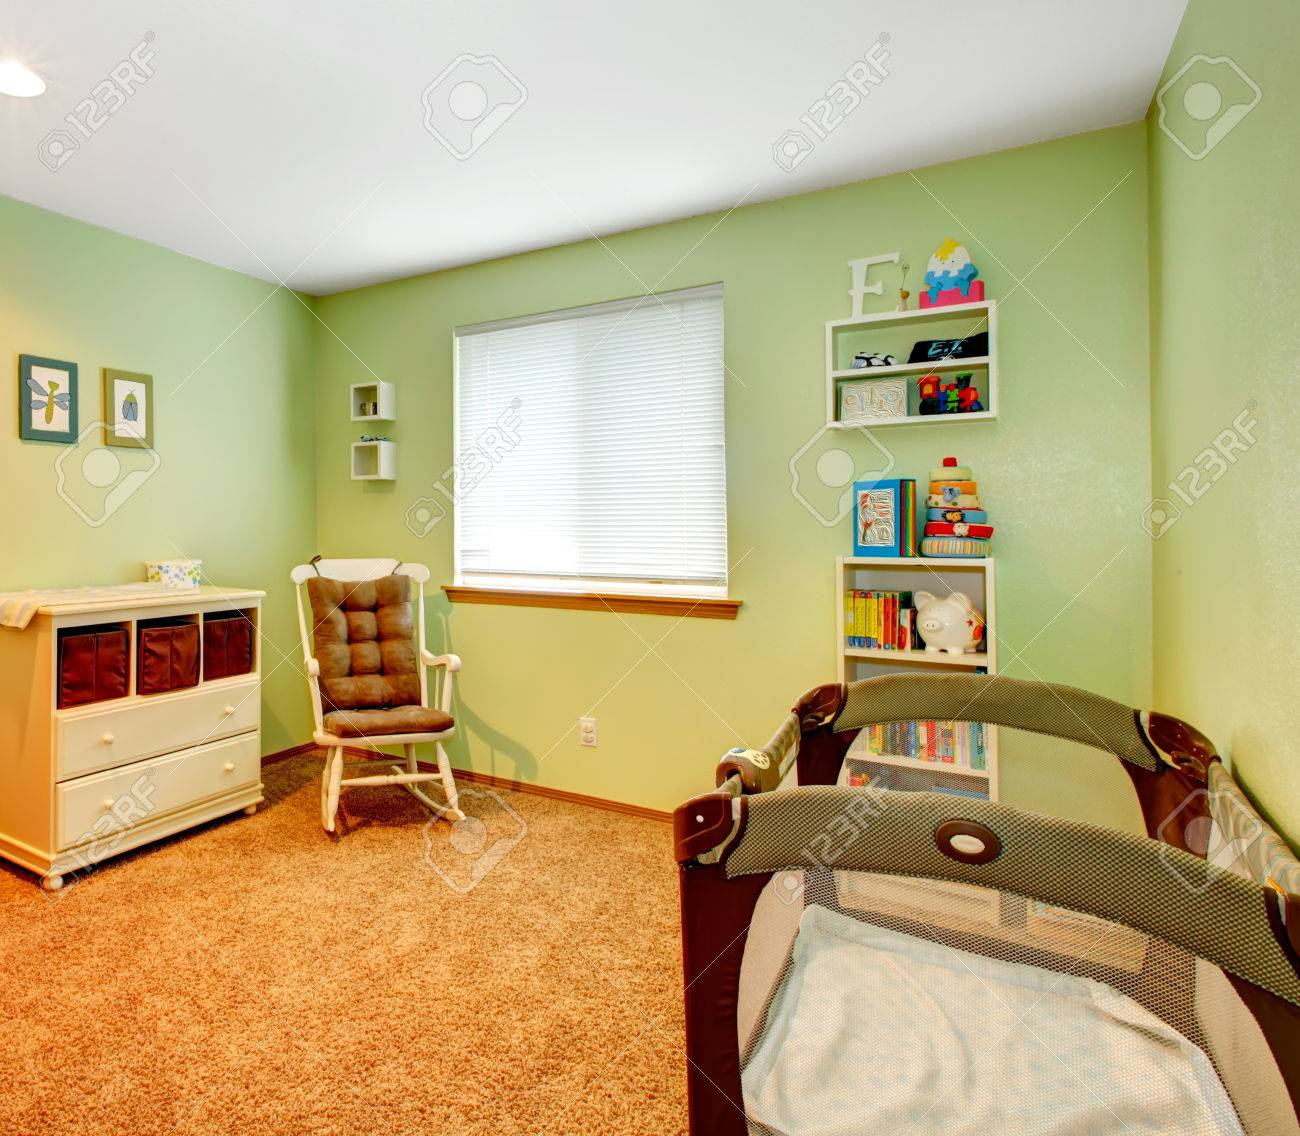 Baby cribs rocking - Green And Beige Cozy Nursery Room With Baby Crib Rocking Chair And Wooden Cabinet Stock